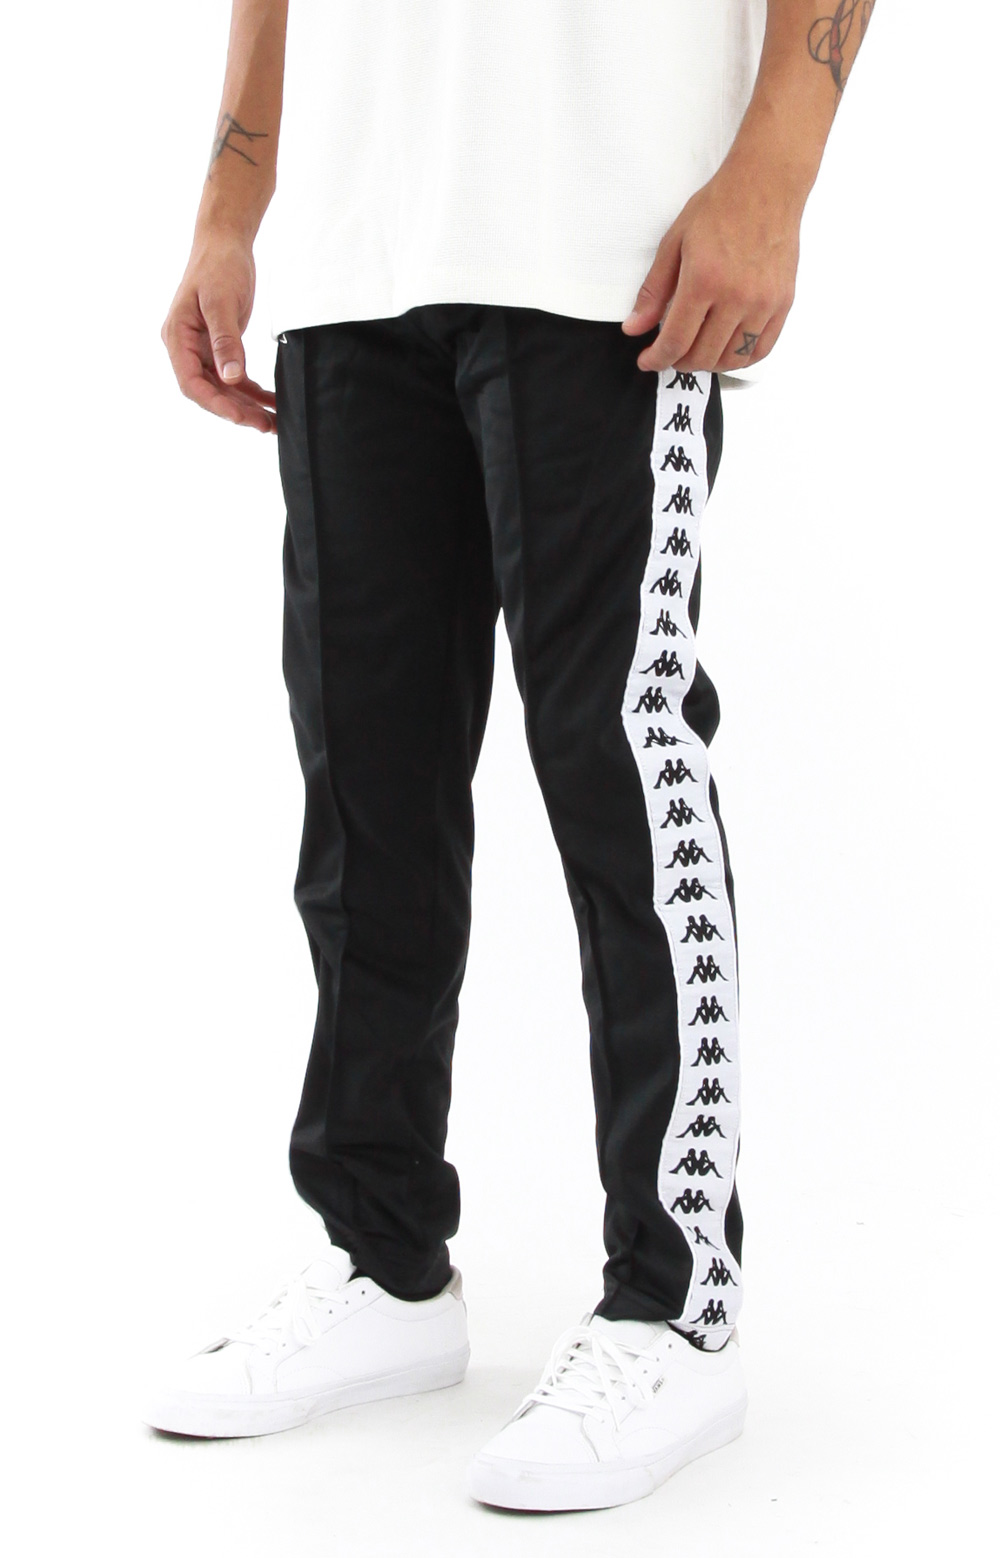 Kappa, 222 Banda Astoria Slim Track Pants - Black/White